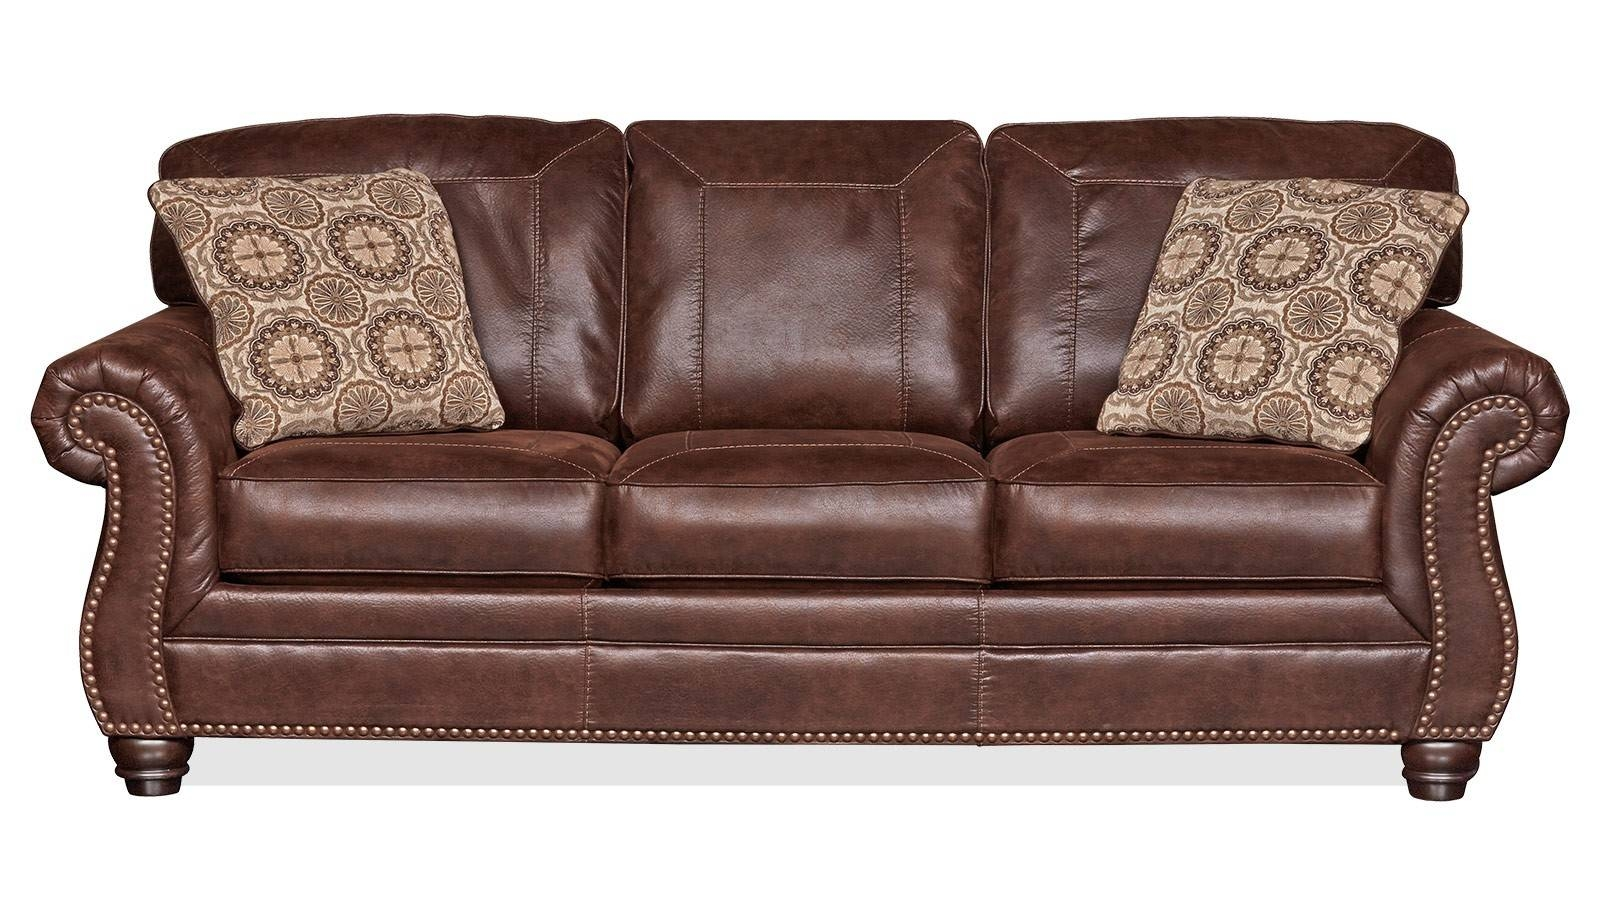 Living Room Sofas | Gallery Furniture Within Camel Colored Leather Sofas (View 10 of 15)